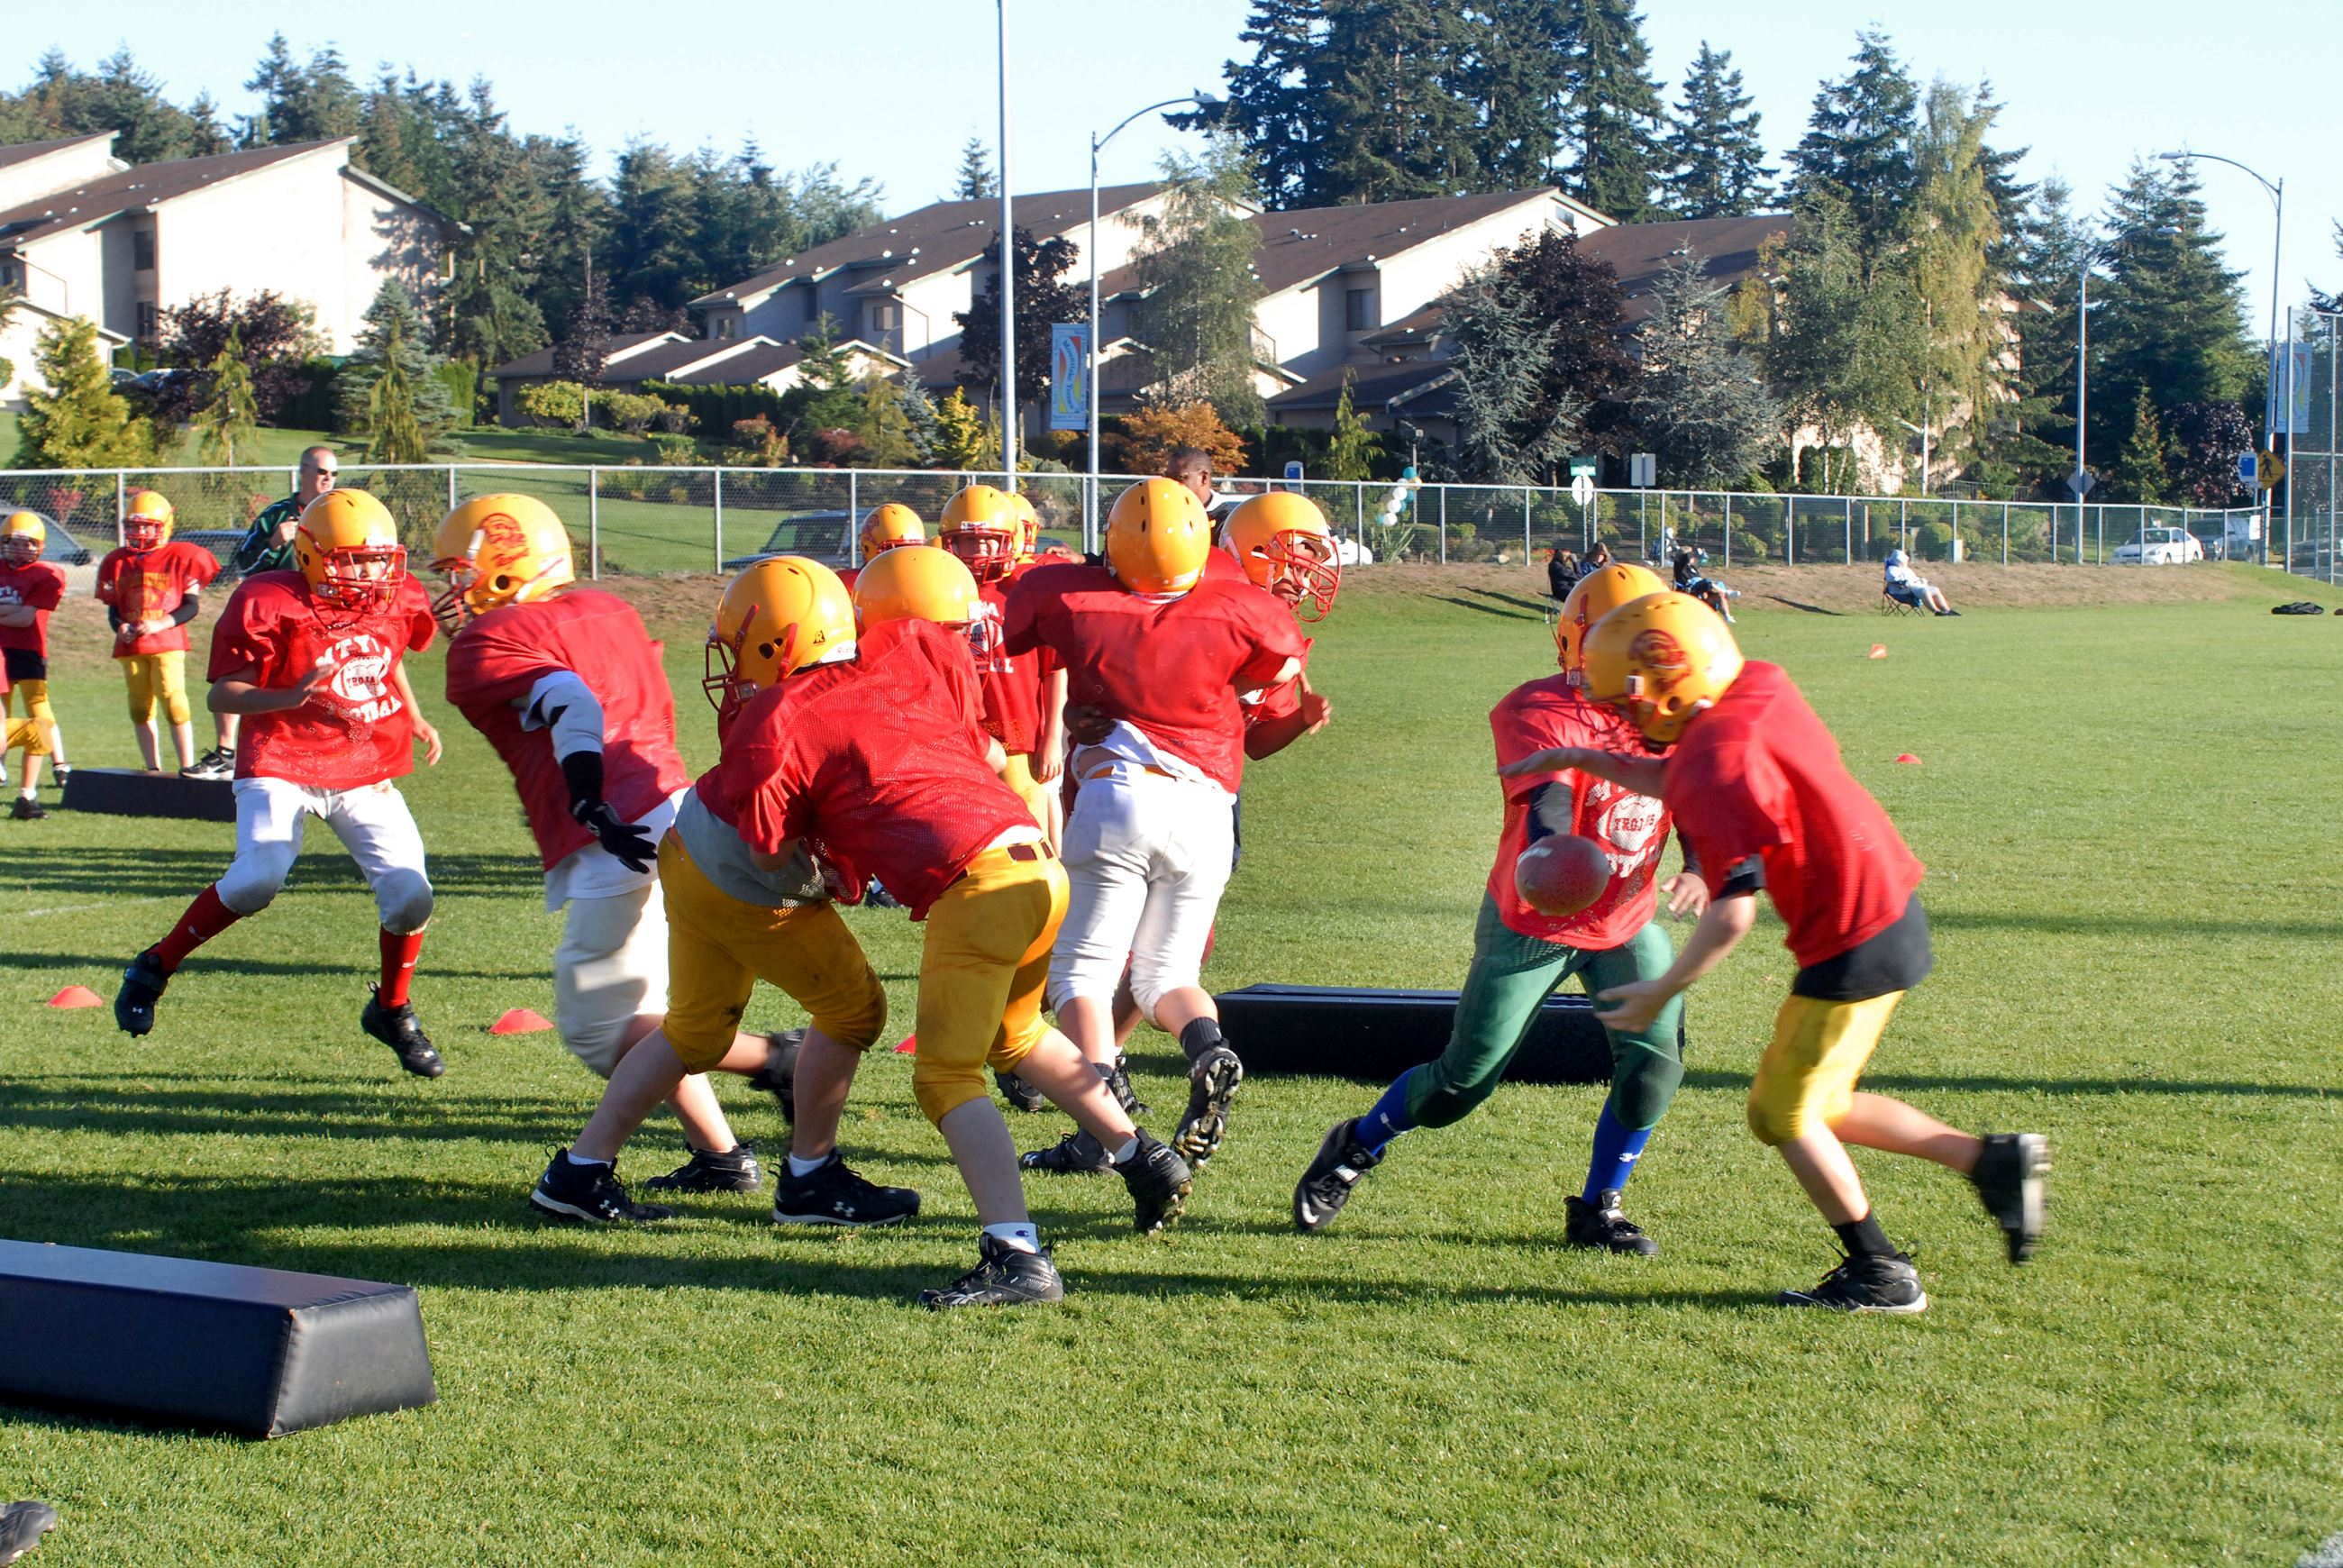 Football practice at Ballinger Playfield